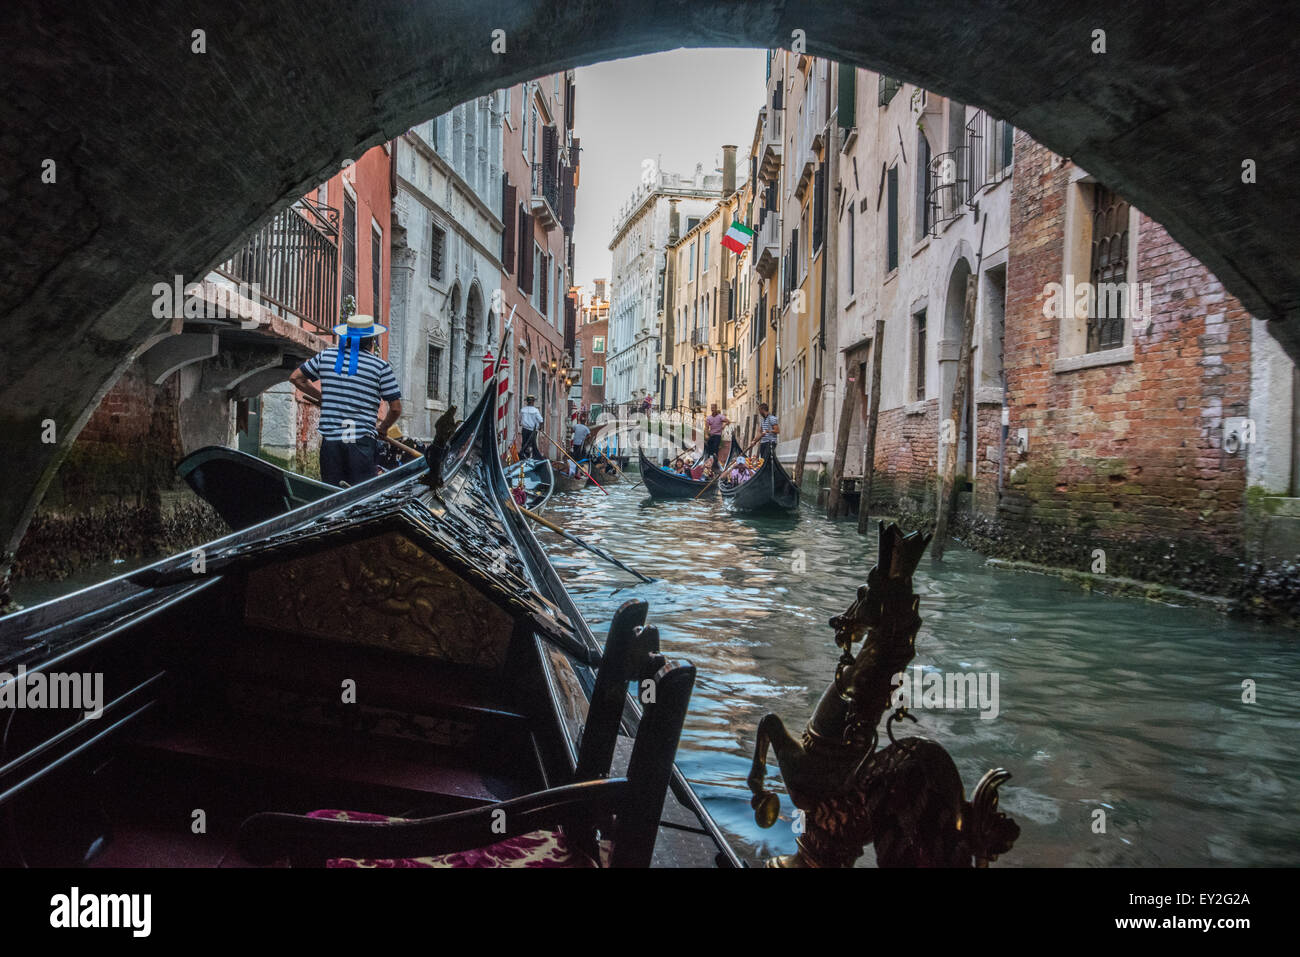 Gondolas Venice Italy on the canal going under a bridge with other gondolas in picture  May 17th 2015 Italy Stock Photo